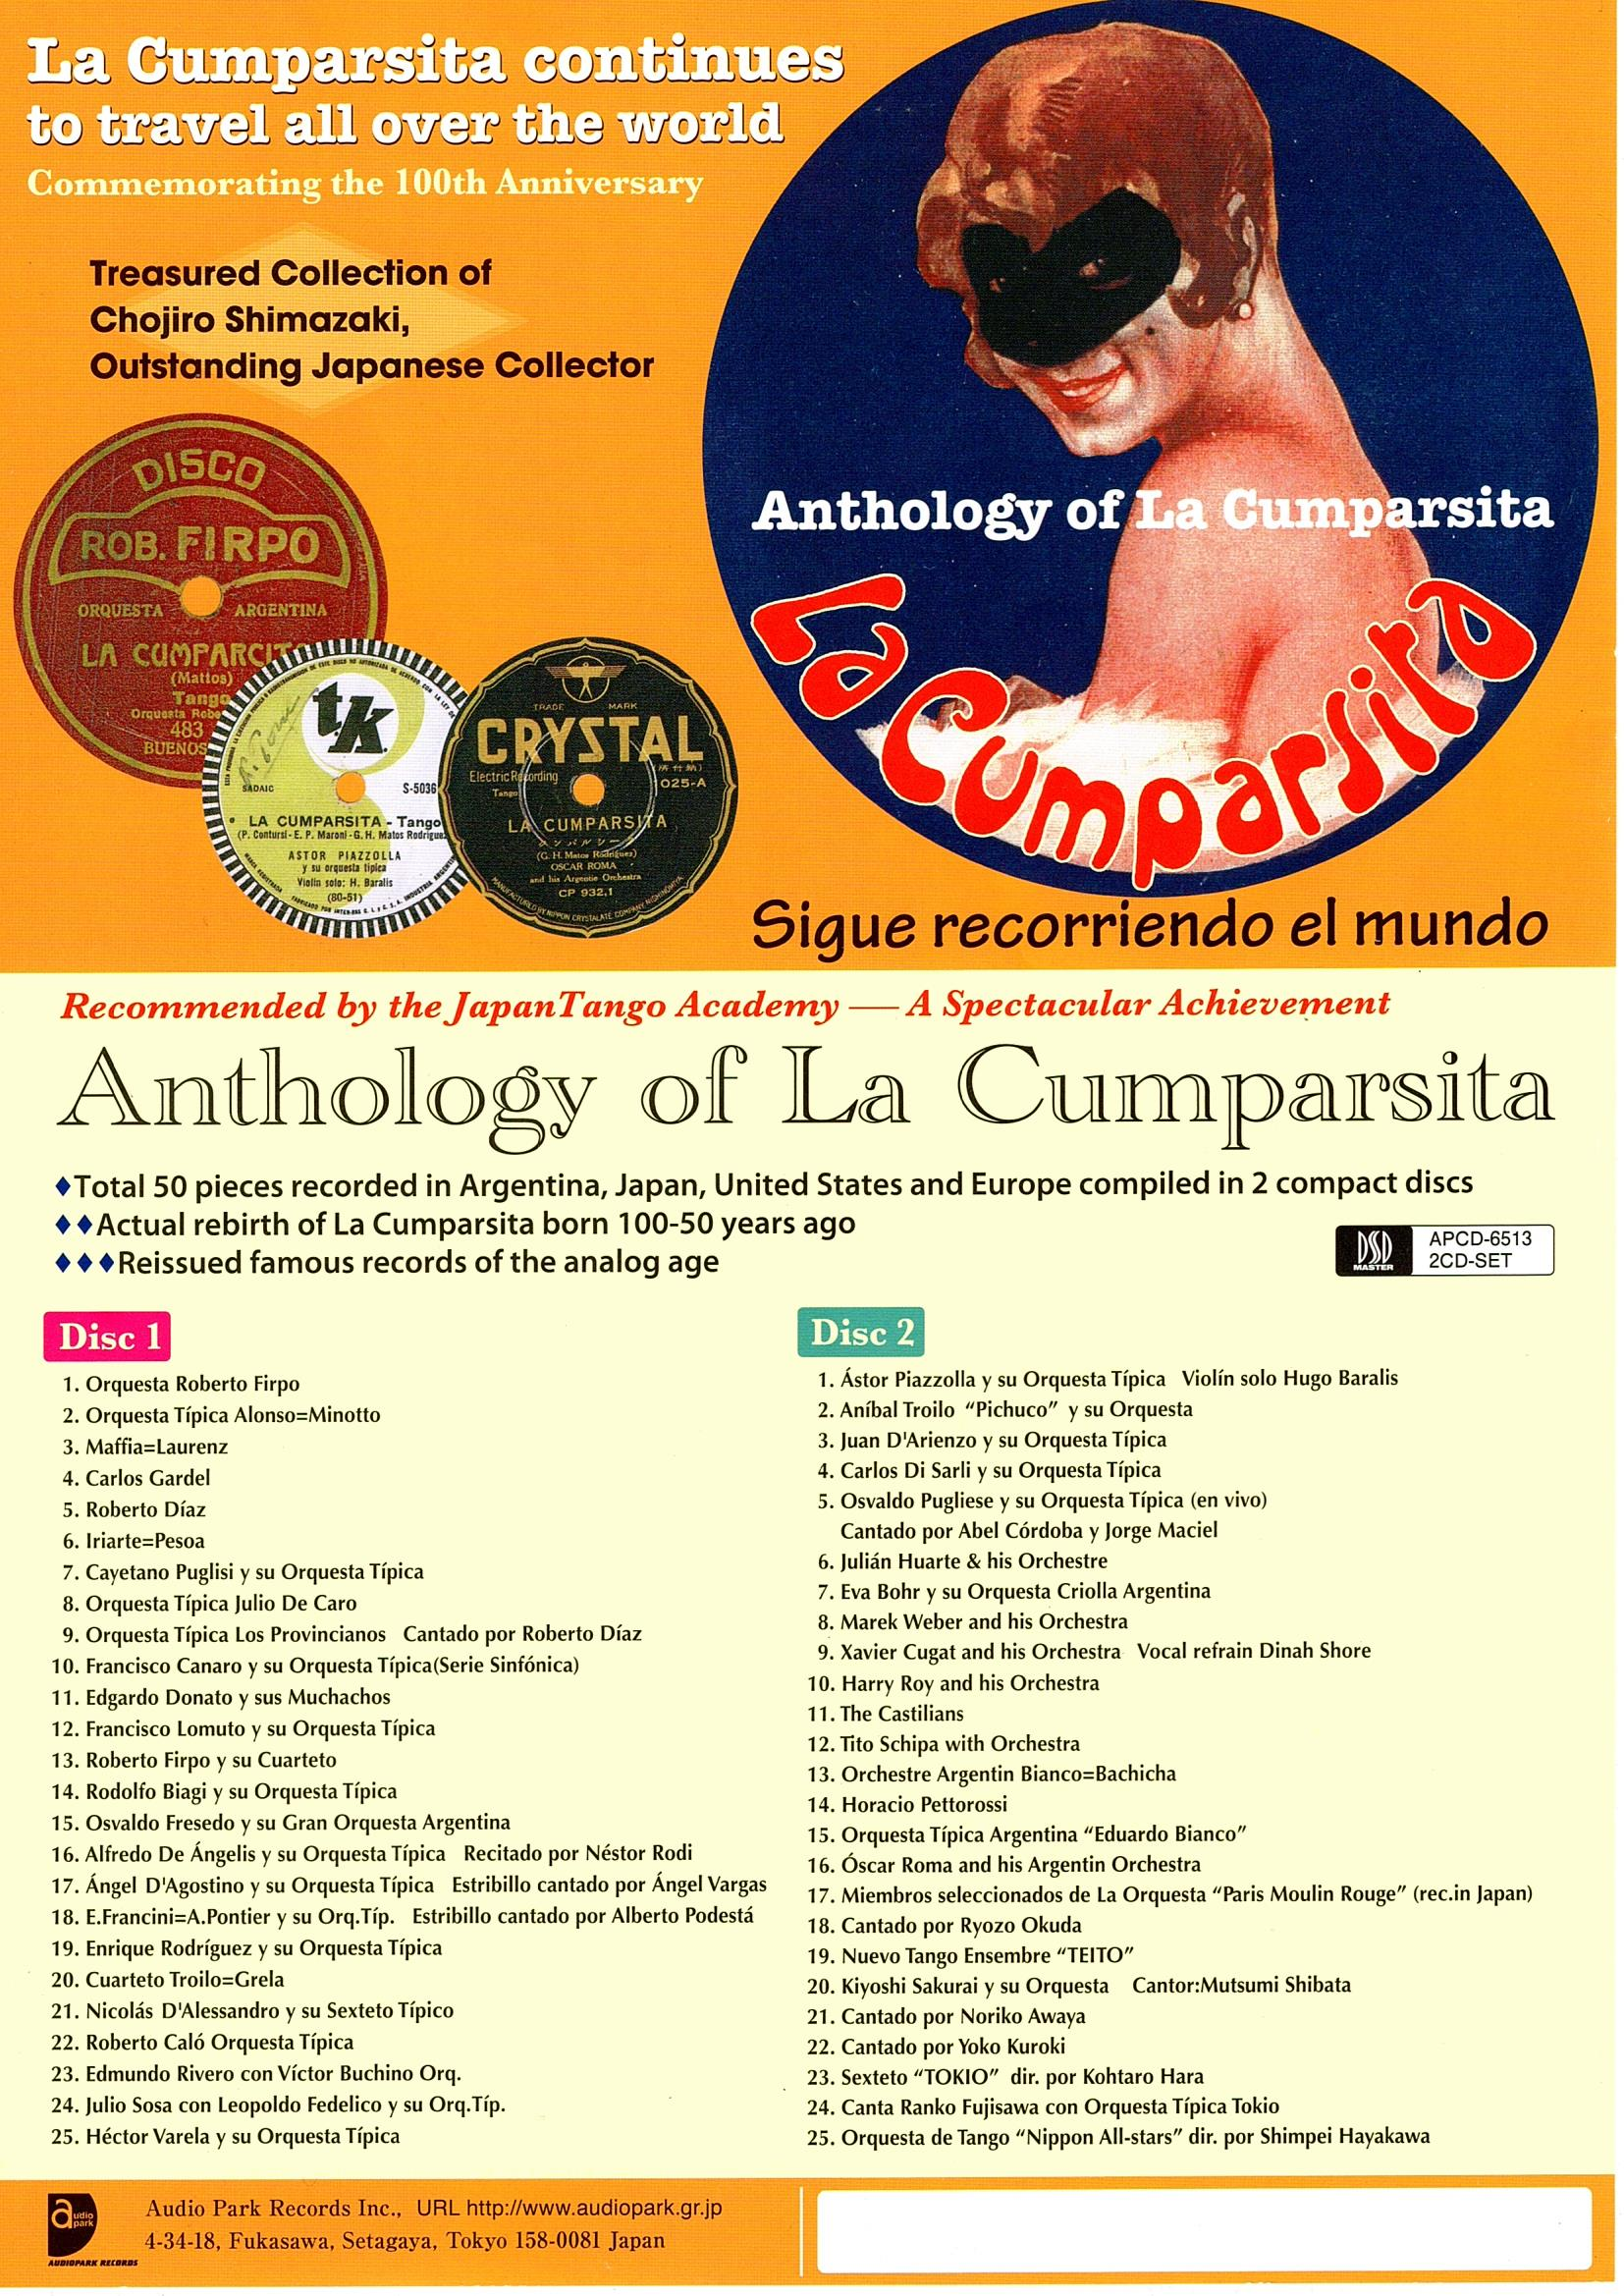 La Cumparsita - pdf - English